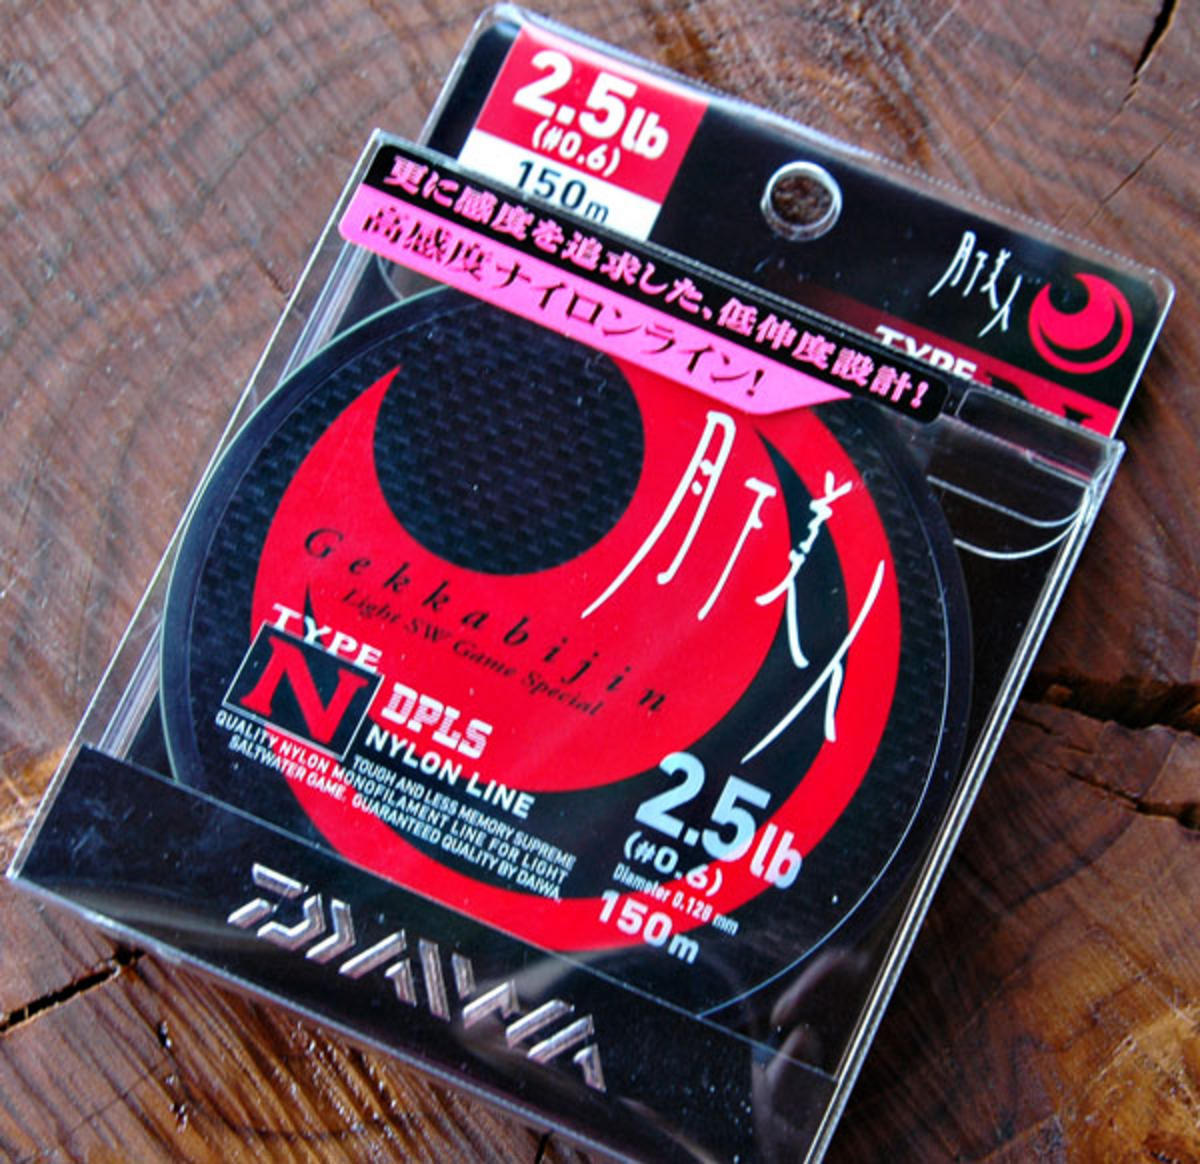 NEW DAIWA GEKKABIJIN TYPE N NYLON FISHING LINE 150M SPOOL 2.5LB - 4LB AVAILABLE